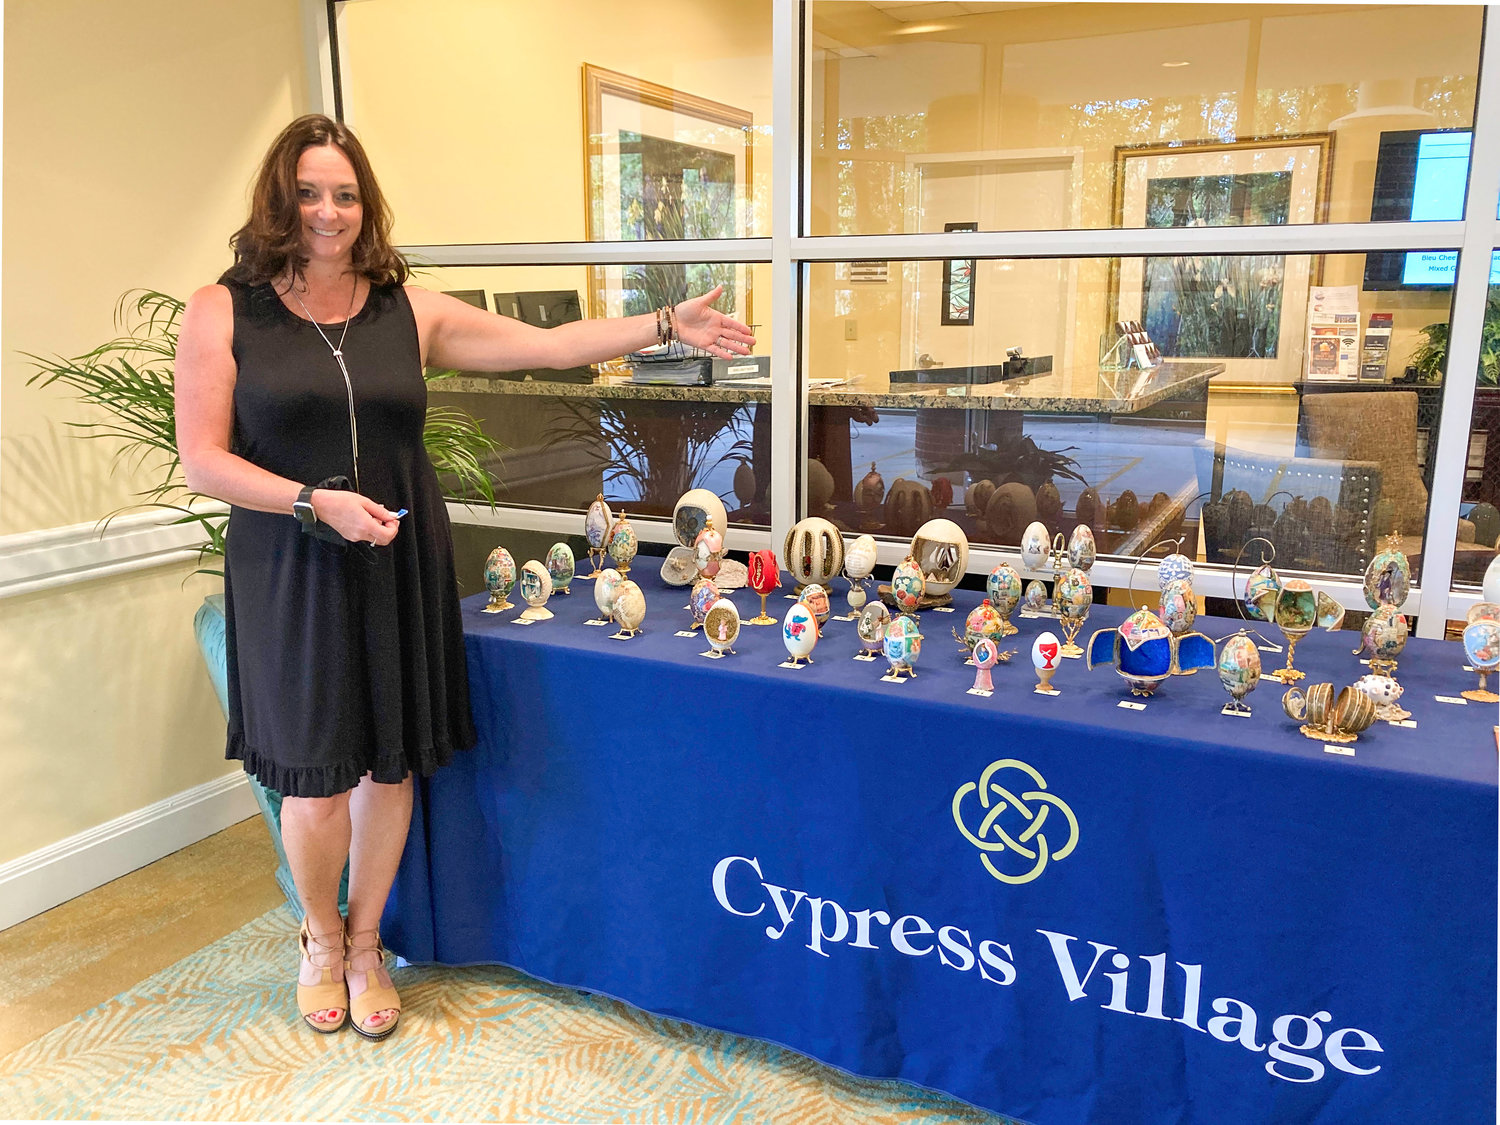 Lisa Green, director of sales and marketing for Cypress Village, stands in front of eggs hand-decorated by former Cypress Village resident Pat Kilpatrick. The eggs were auctioned off to help raise money for the facility's employee scholarship fund.